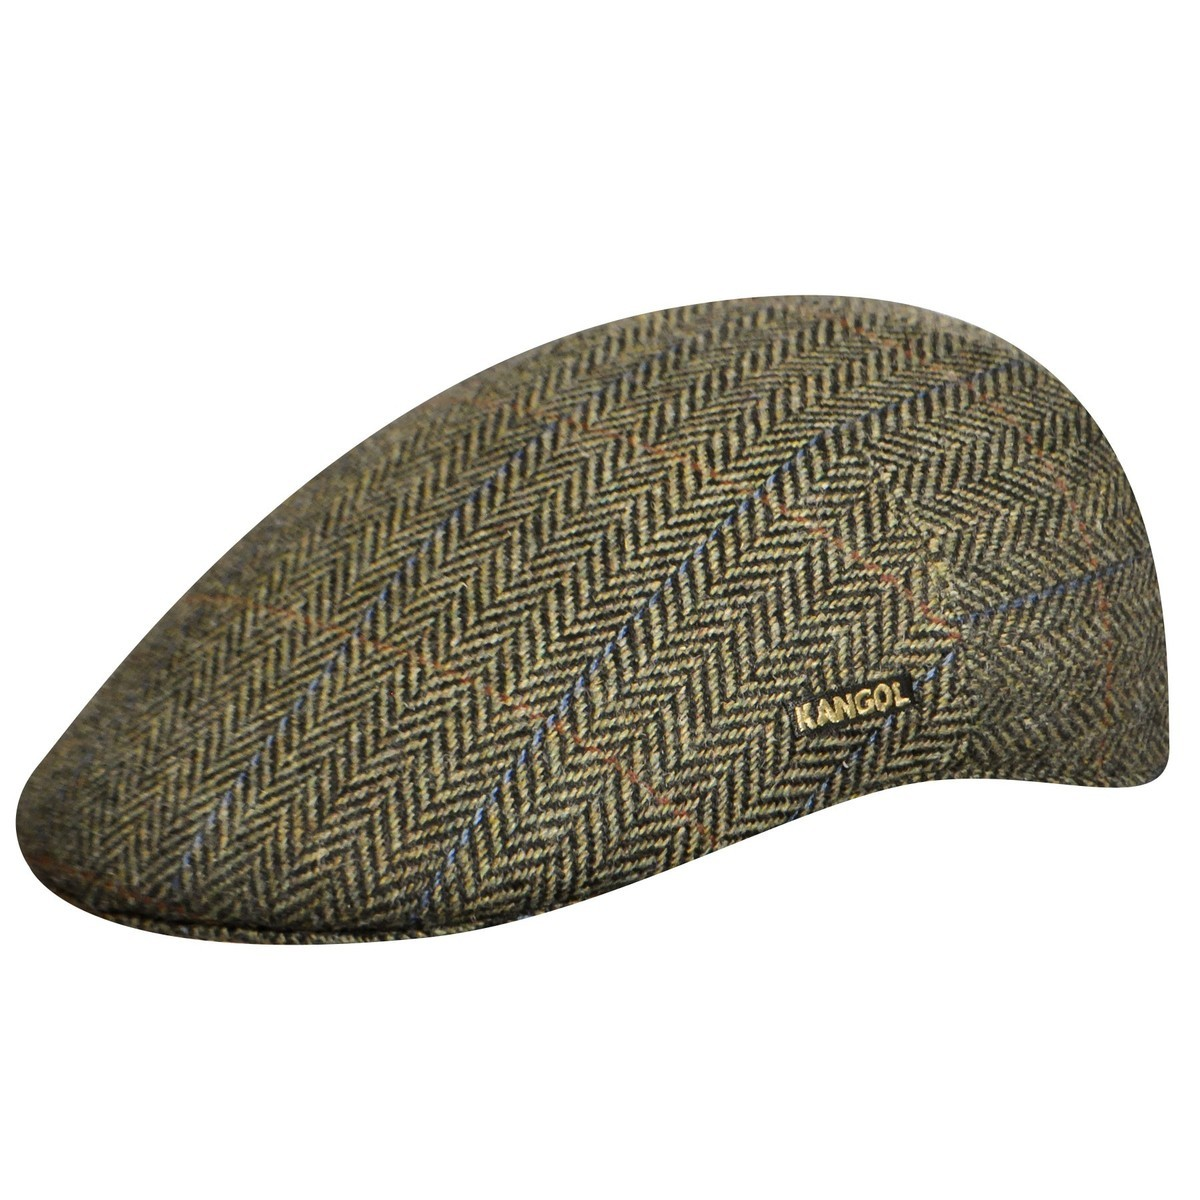 Kangol カンゴール Tweed Milano Cap Herringbone Check Ivy Caps & Flat Caps 帽子 Herringbone Check